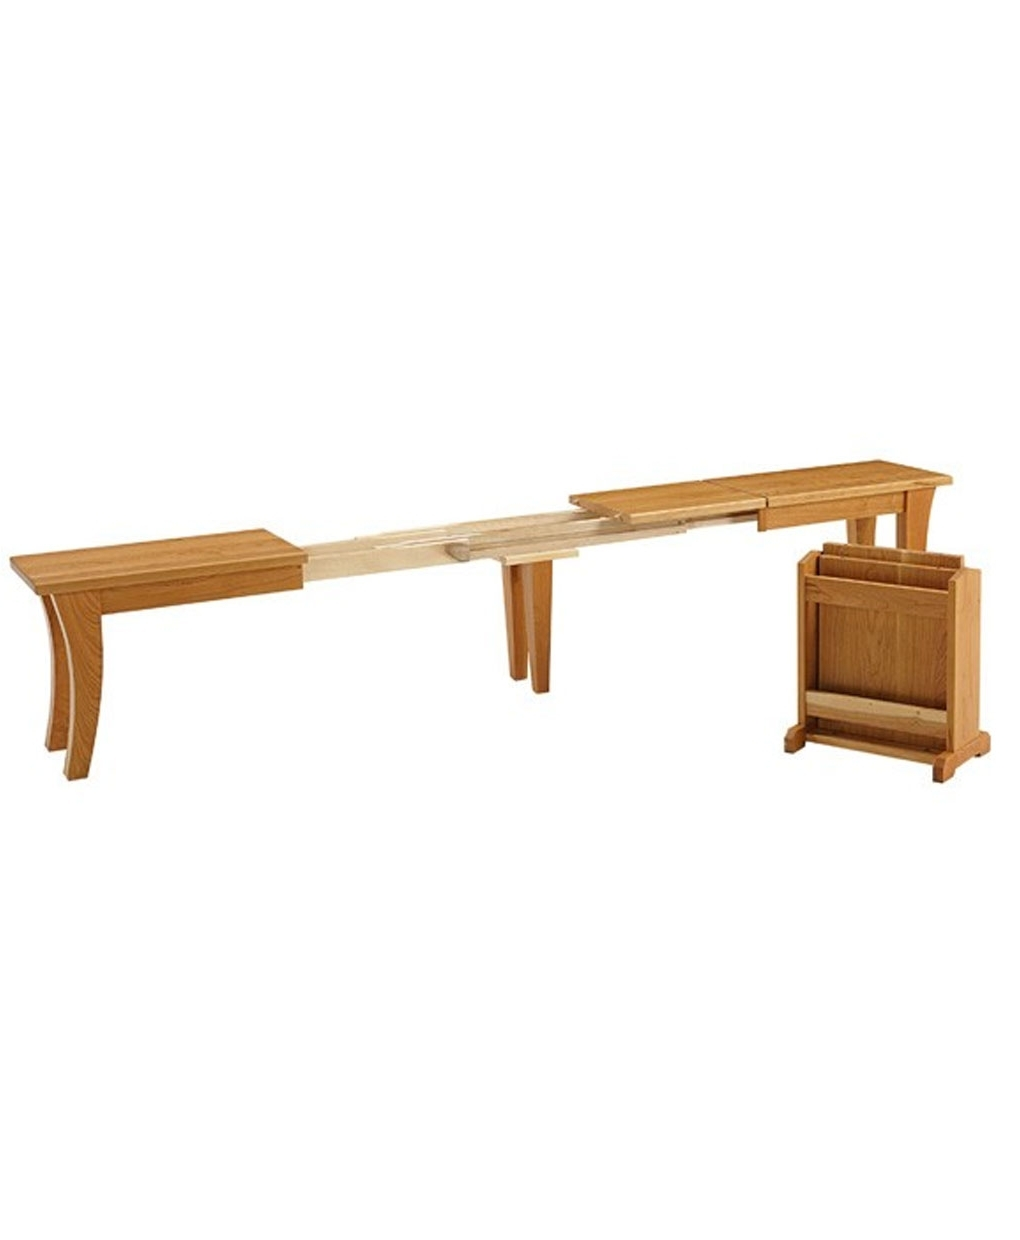 Chandler Extension Dining Tables Inside Well Liked Chandler Extend A Bench – Amish Direct Furniture (View 7 of 25)